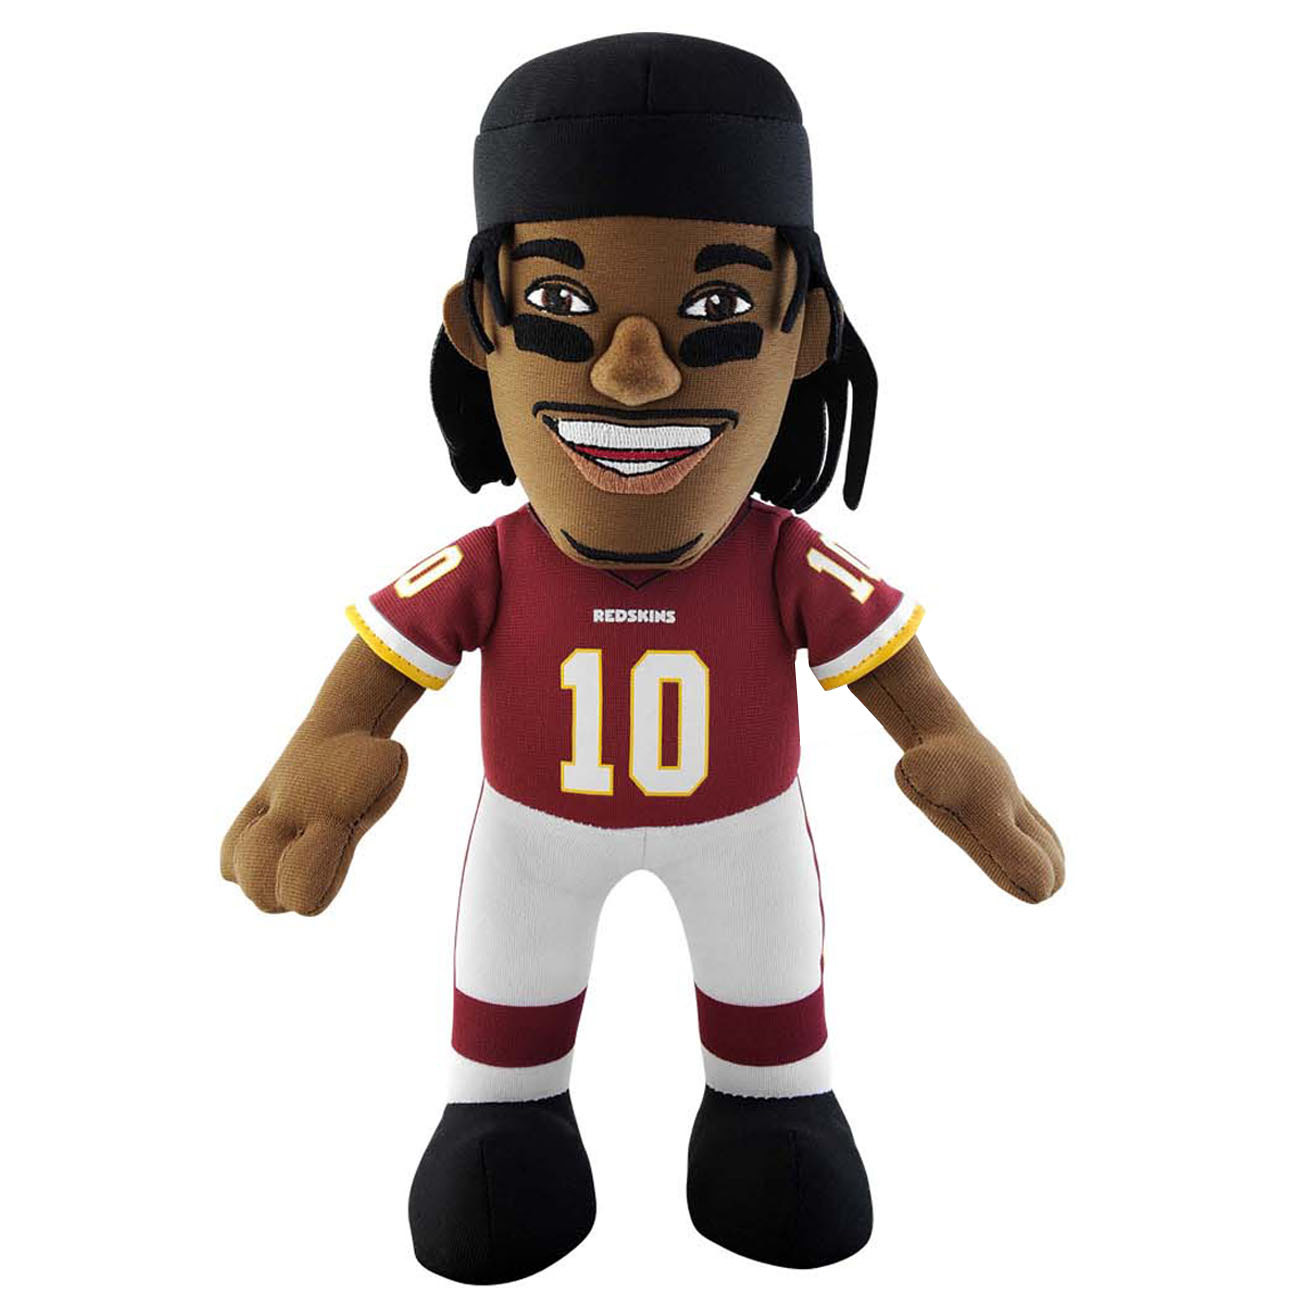 Washington Redskins Bleacher Creature 10 inch Plush - Robert Griffin III